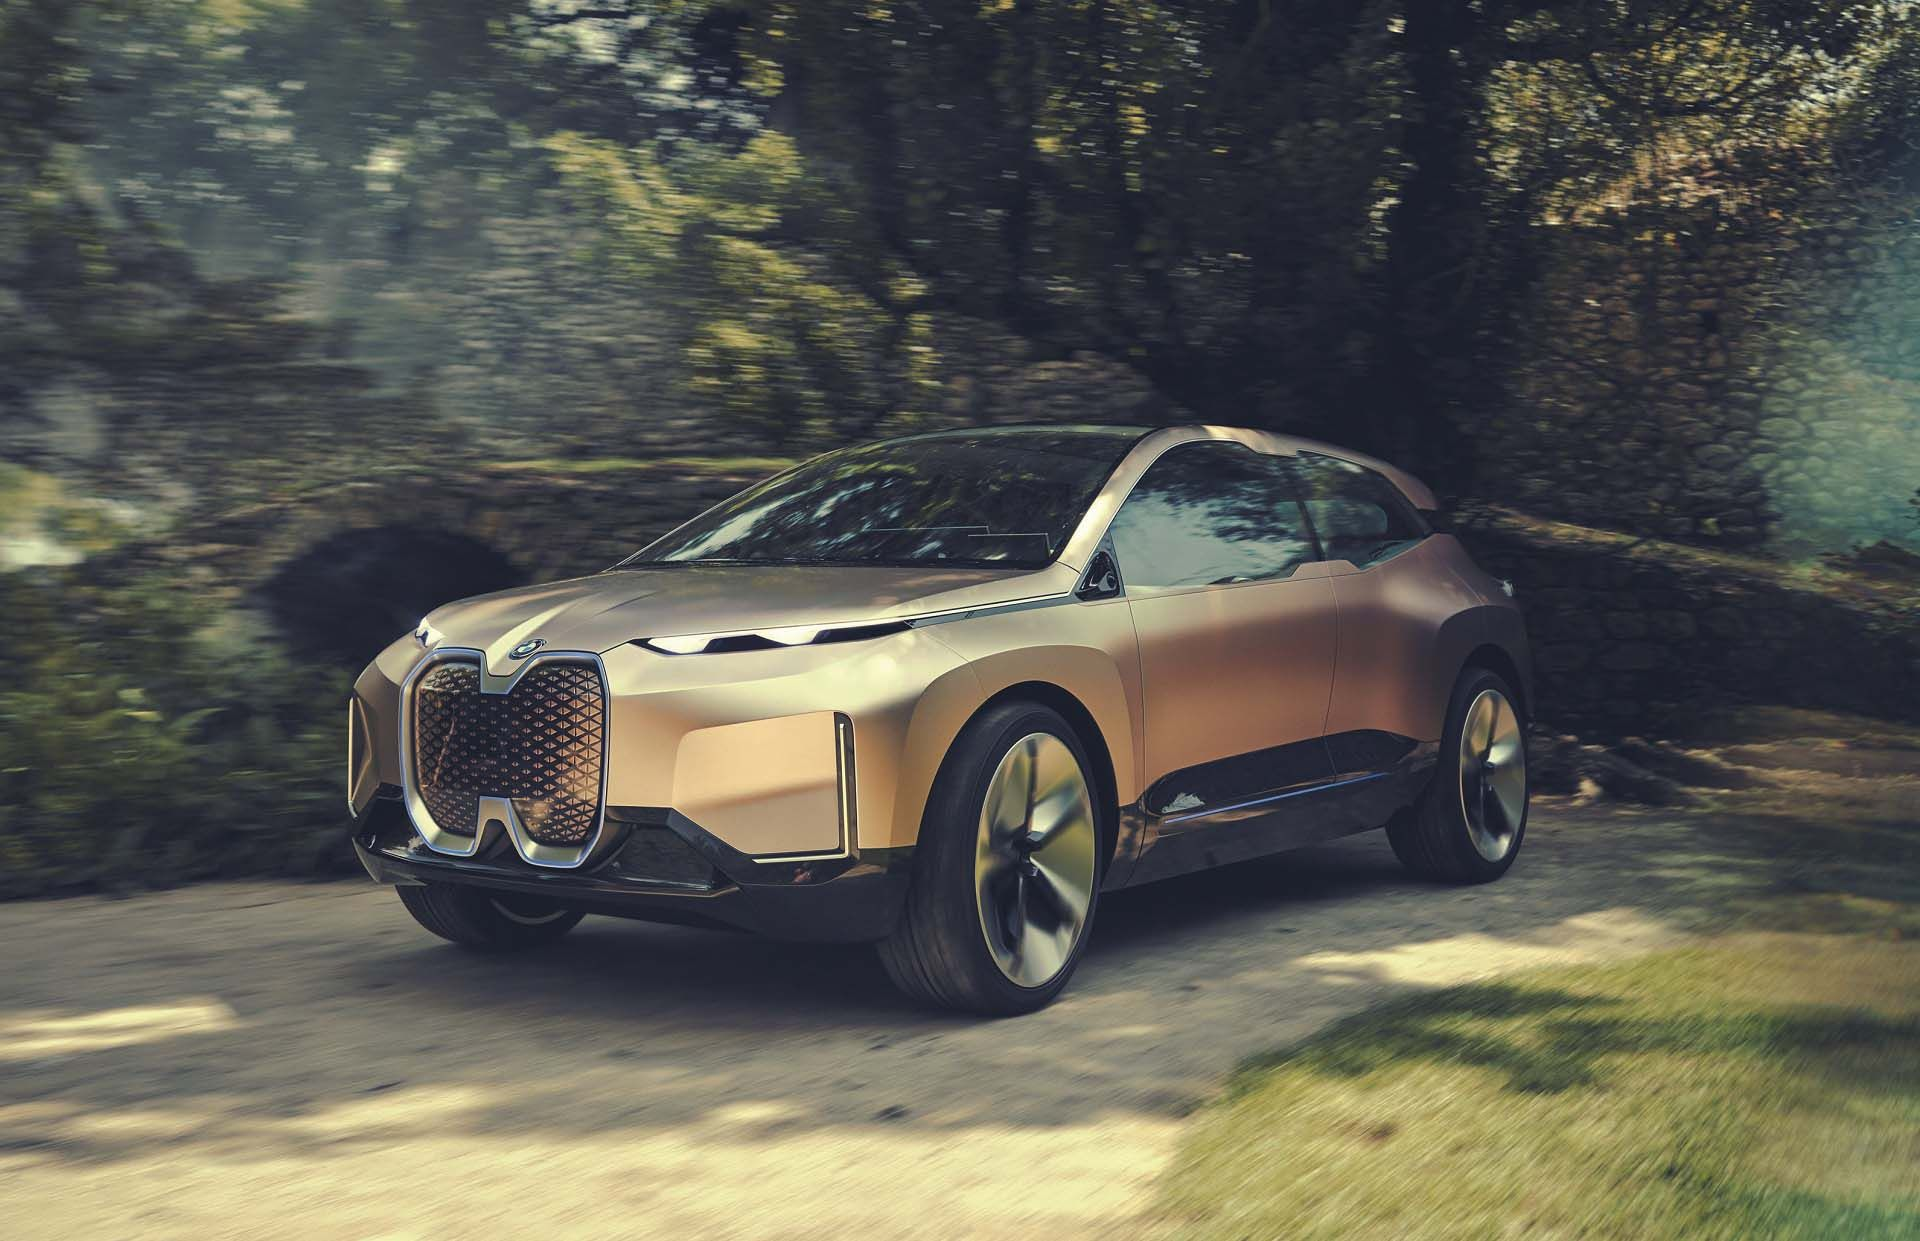 BMW says Level 5 selfdriving car for public could happen